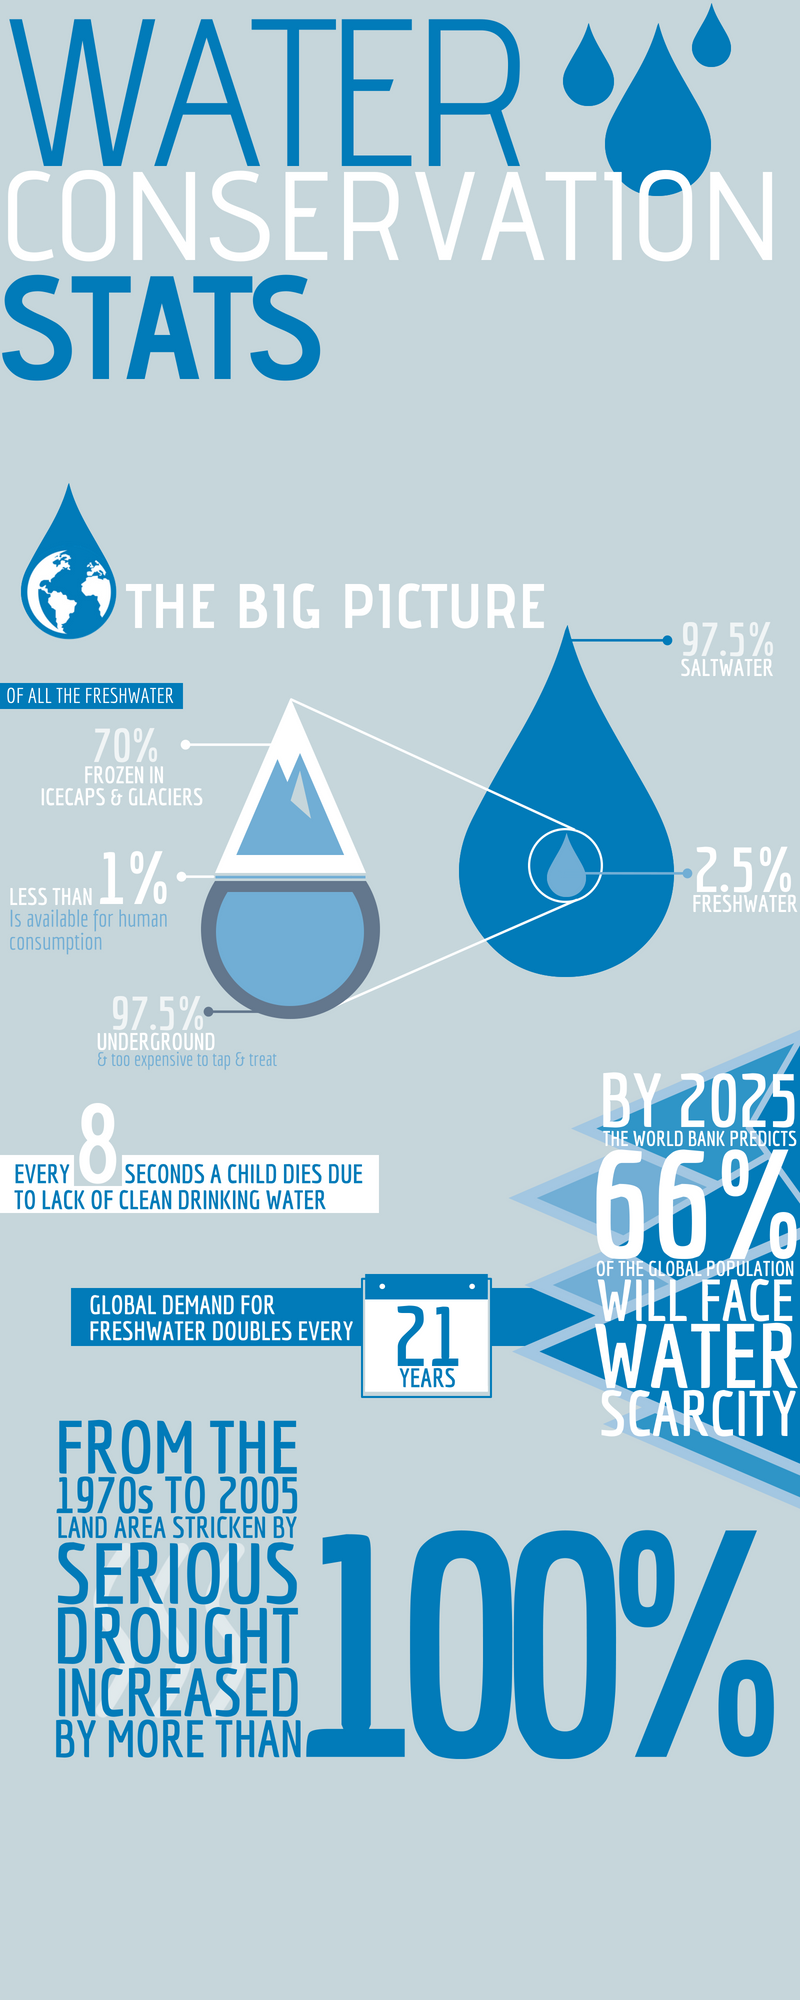 Water Conservation Stats for Your Irrigation Business (1)